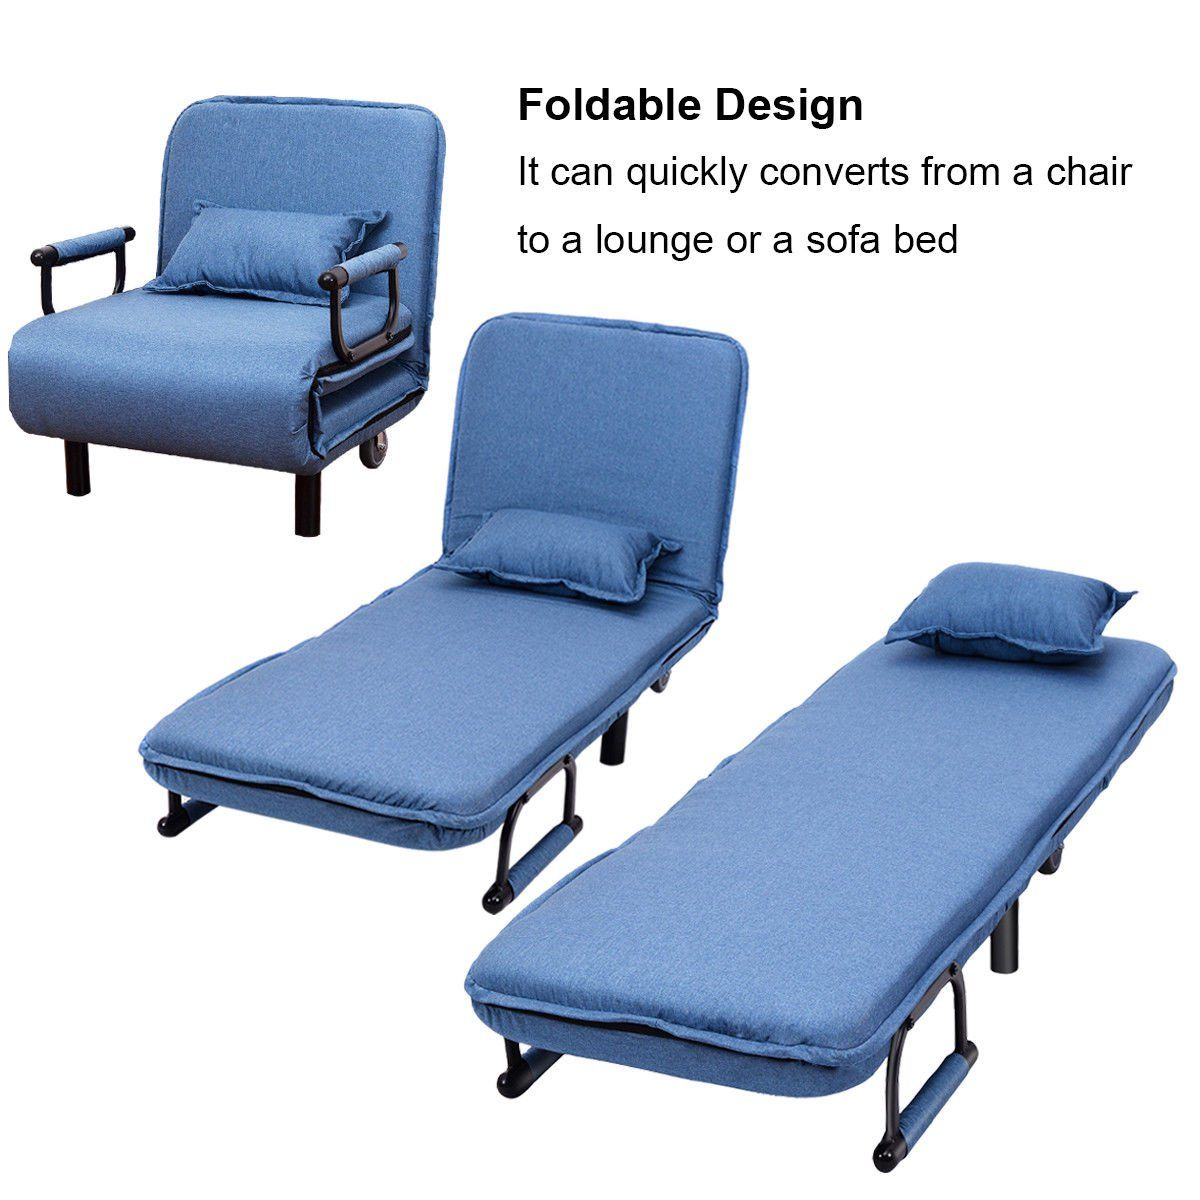 Costway Convertible Sofa Bed Folding Arm Chair Sleeper Leisure Recliner Lounge Couch Walmart Com In 2020 Sofa Bed Convertible Sofa Bed Convertible Sofa